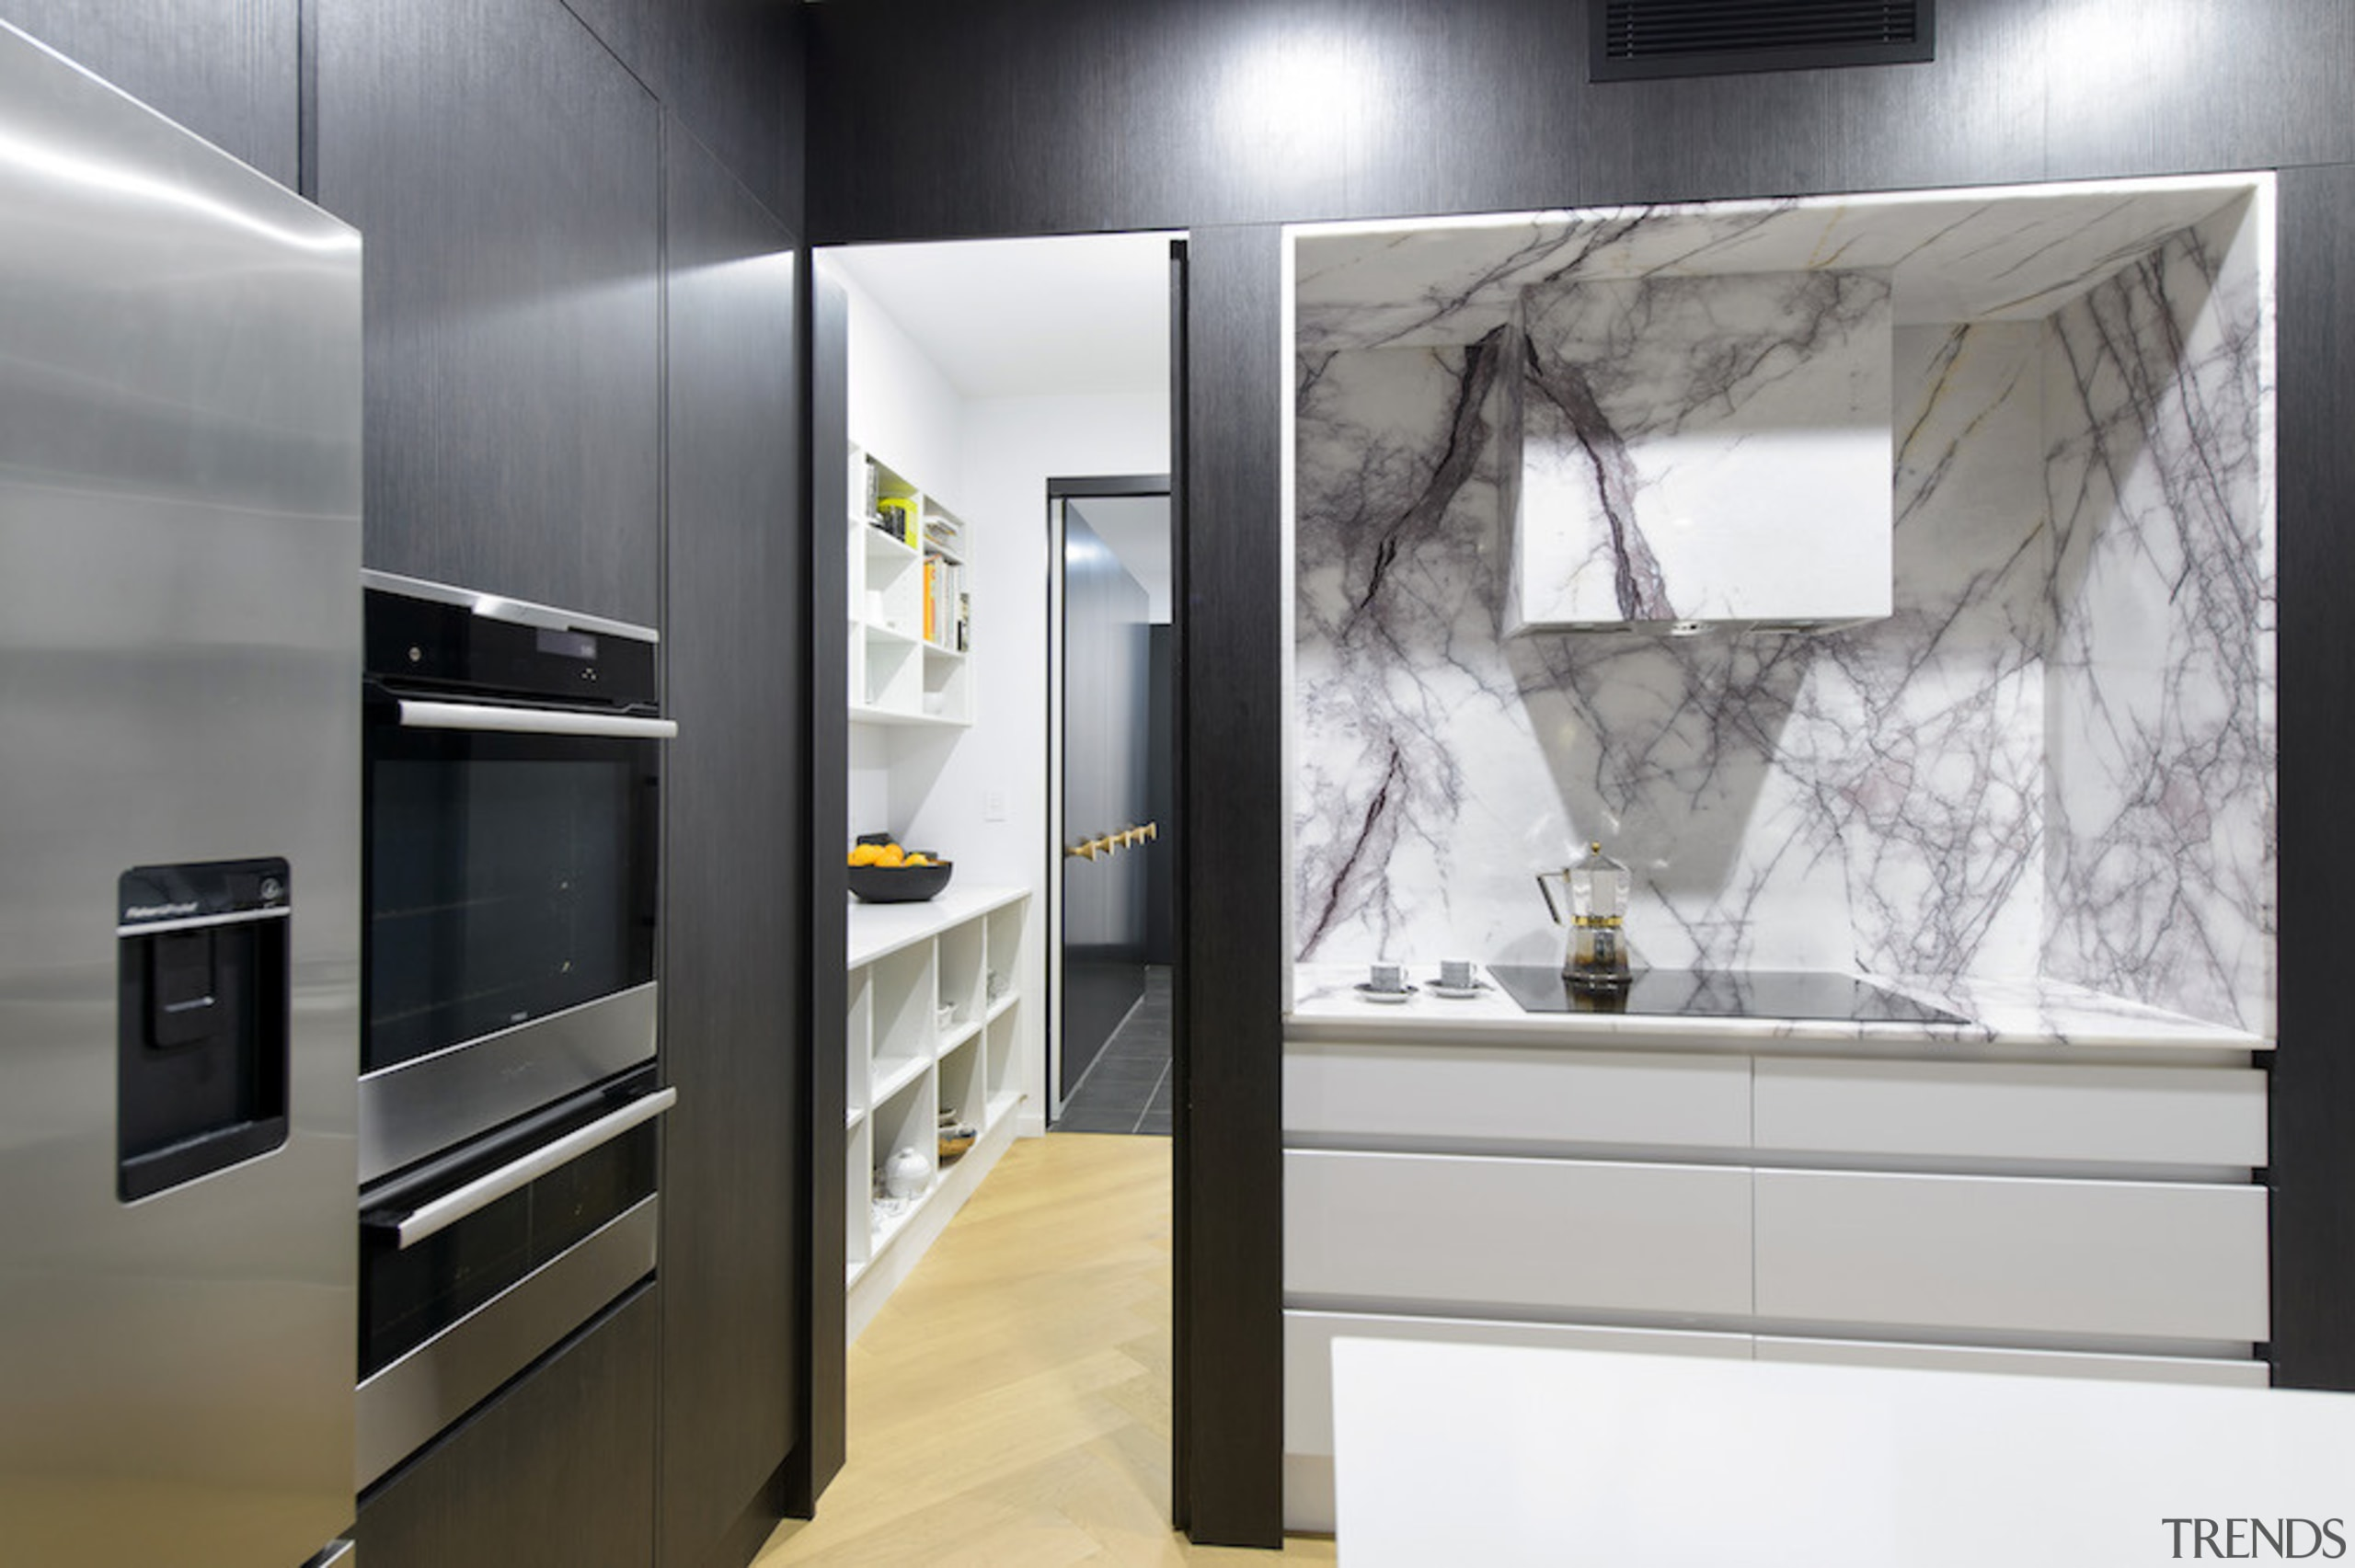 Marble surfaces give the kitchen an upmarket aesthetic. building, cabinetry, countertop, cupboard, floor, furniture, home appliance, house, interior design, kitchen, material property, property, room, wall, gray